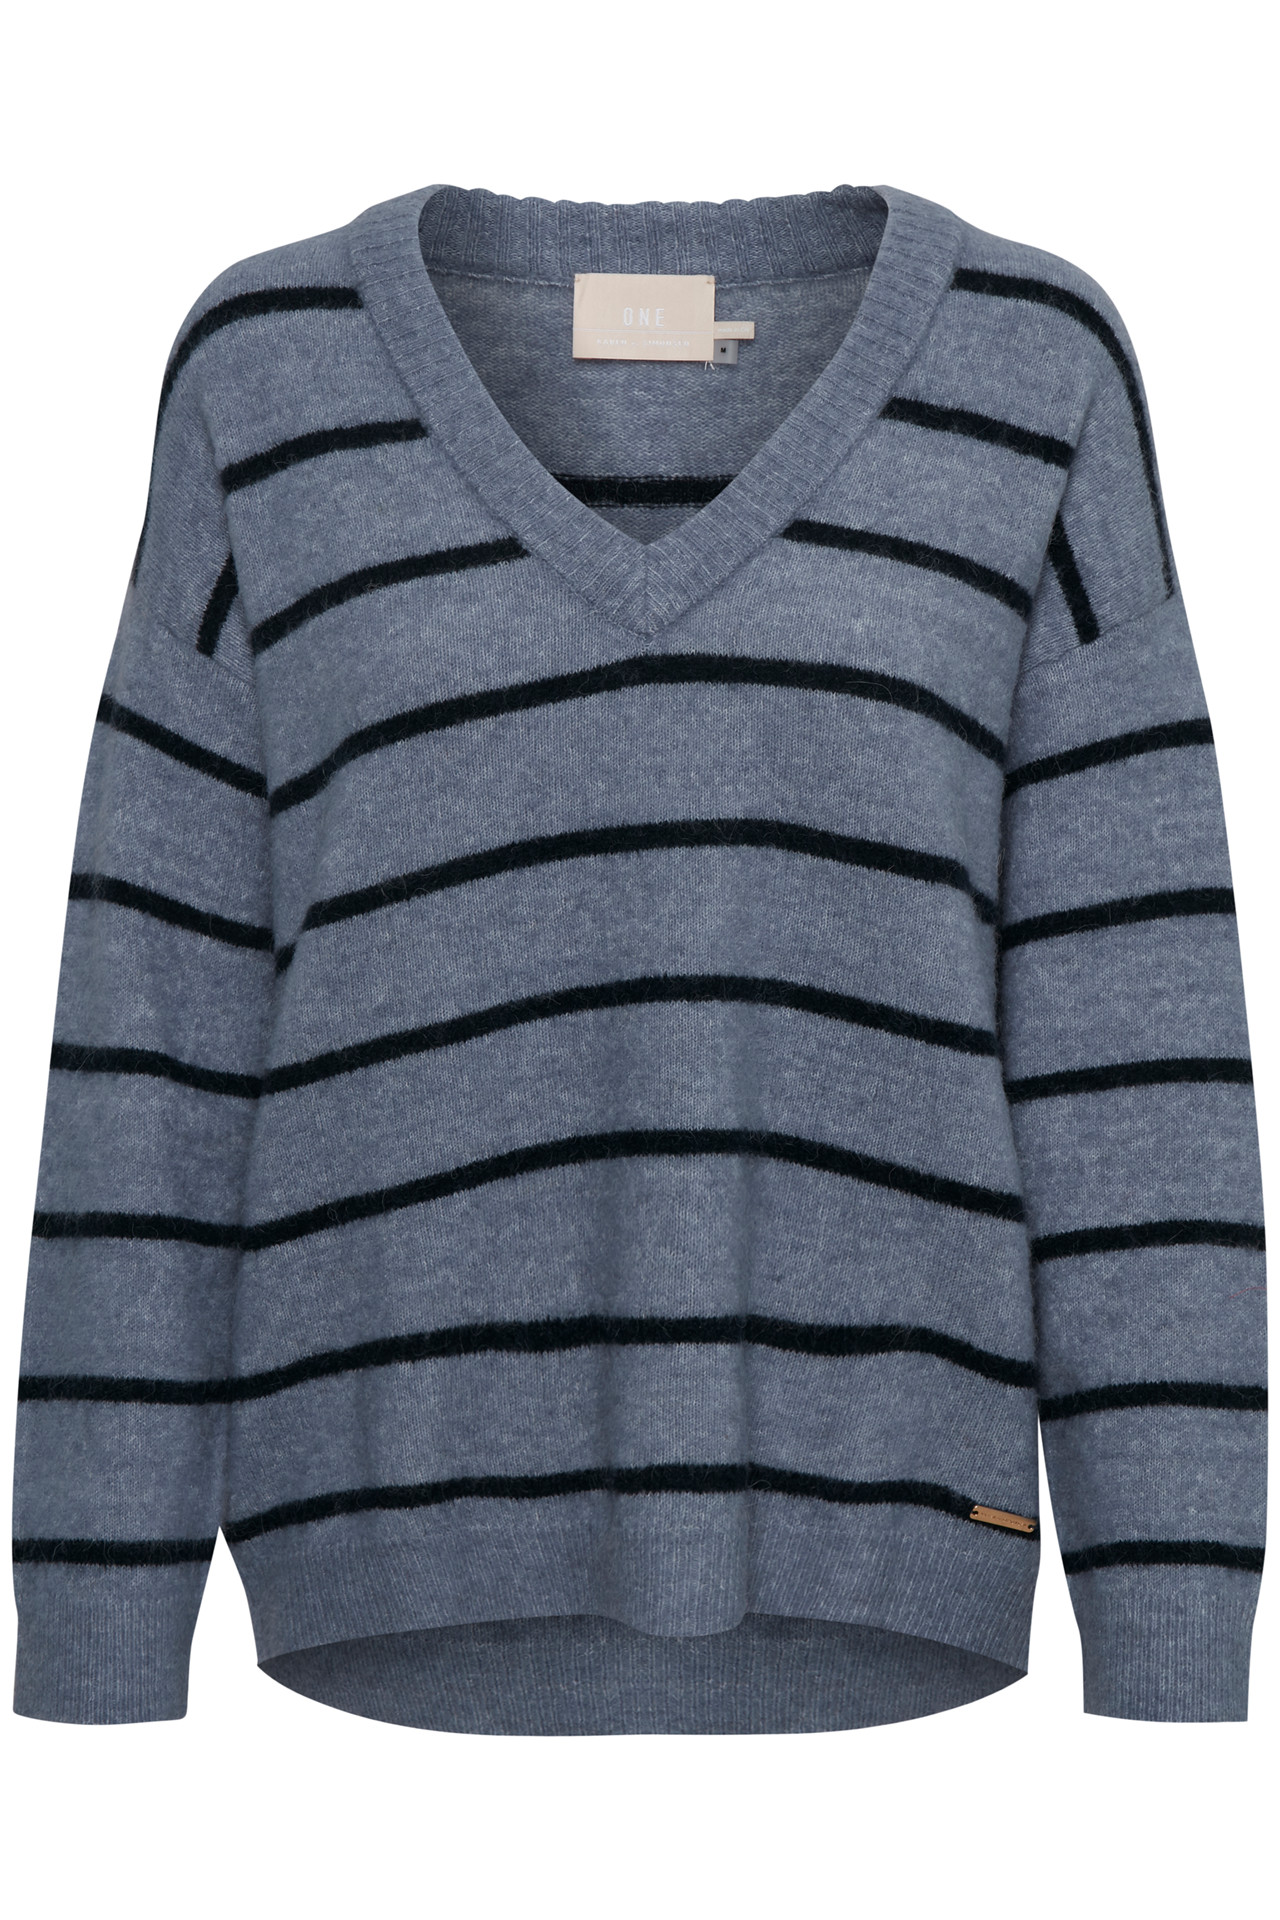 Image of   KAREN BY SIMONSEN EVERDAY PULLOVER 10102820 B (Blue Blone With 40859, L)